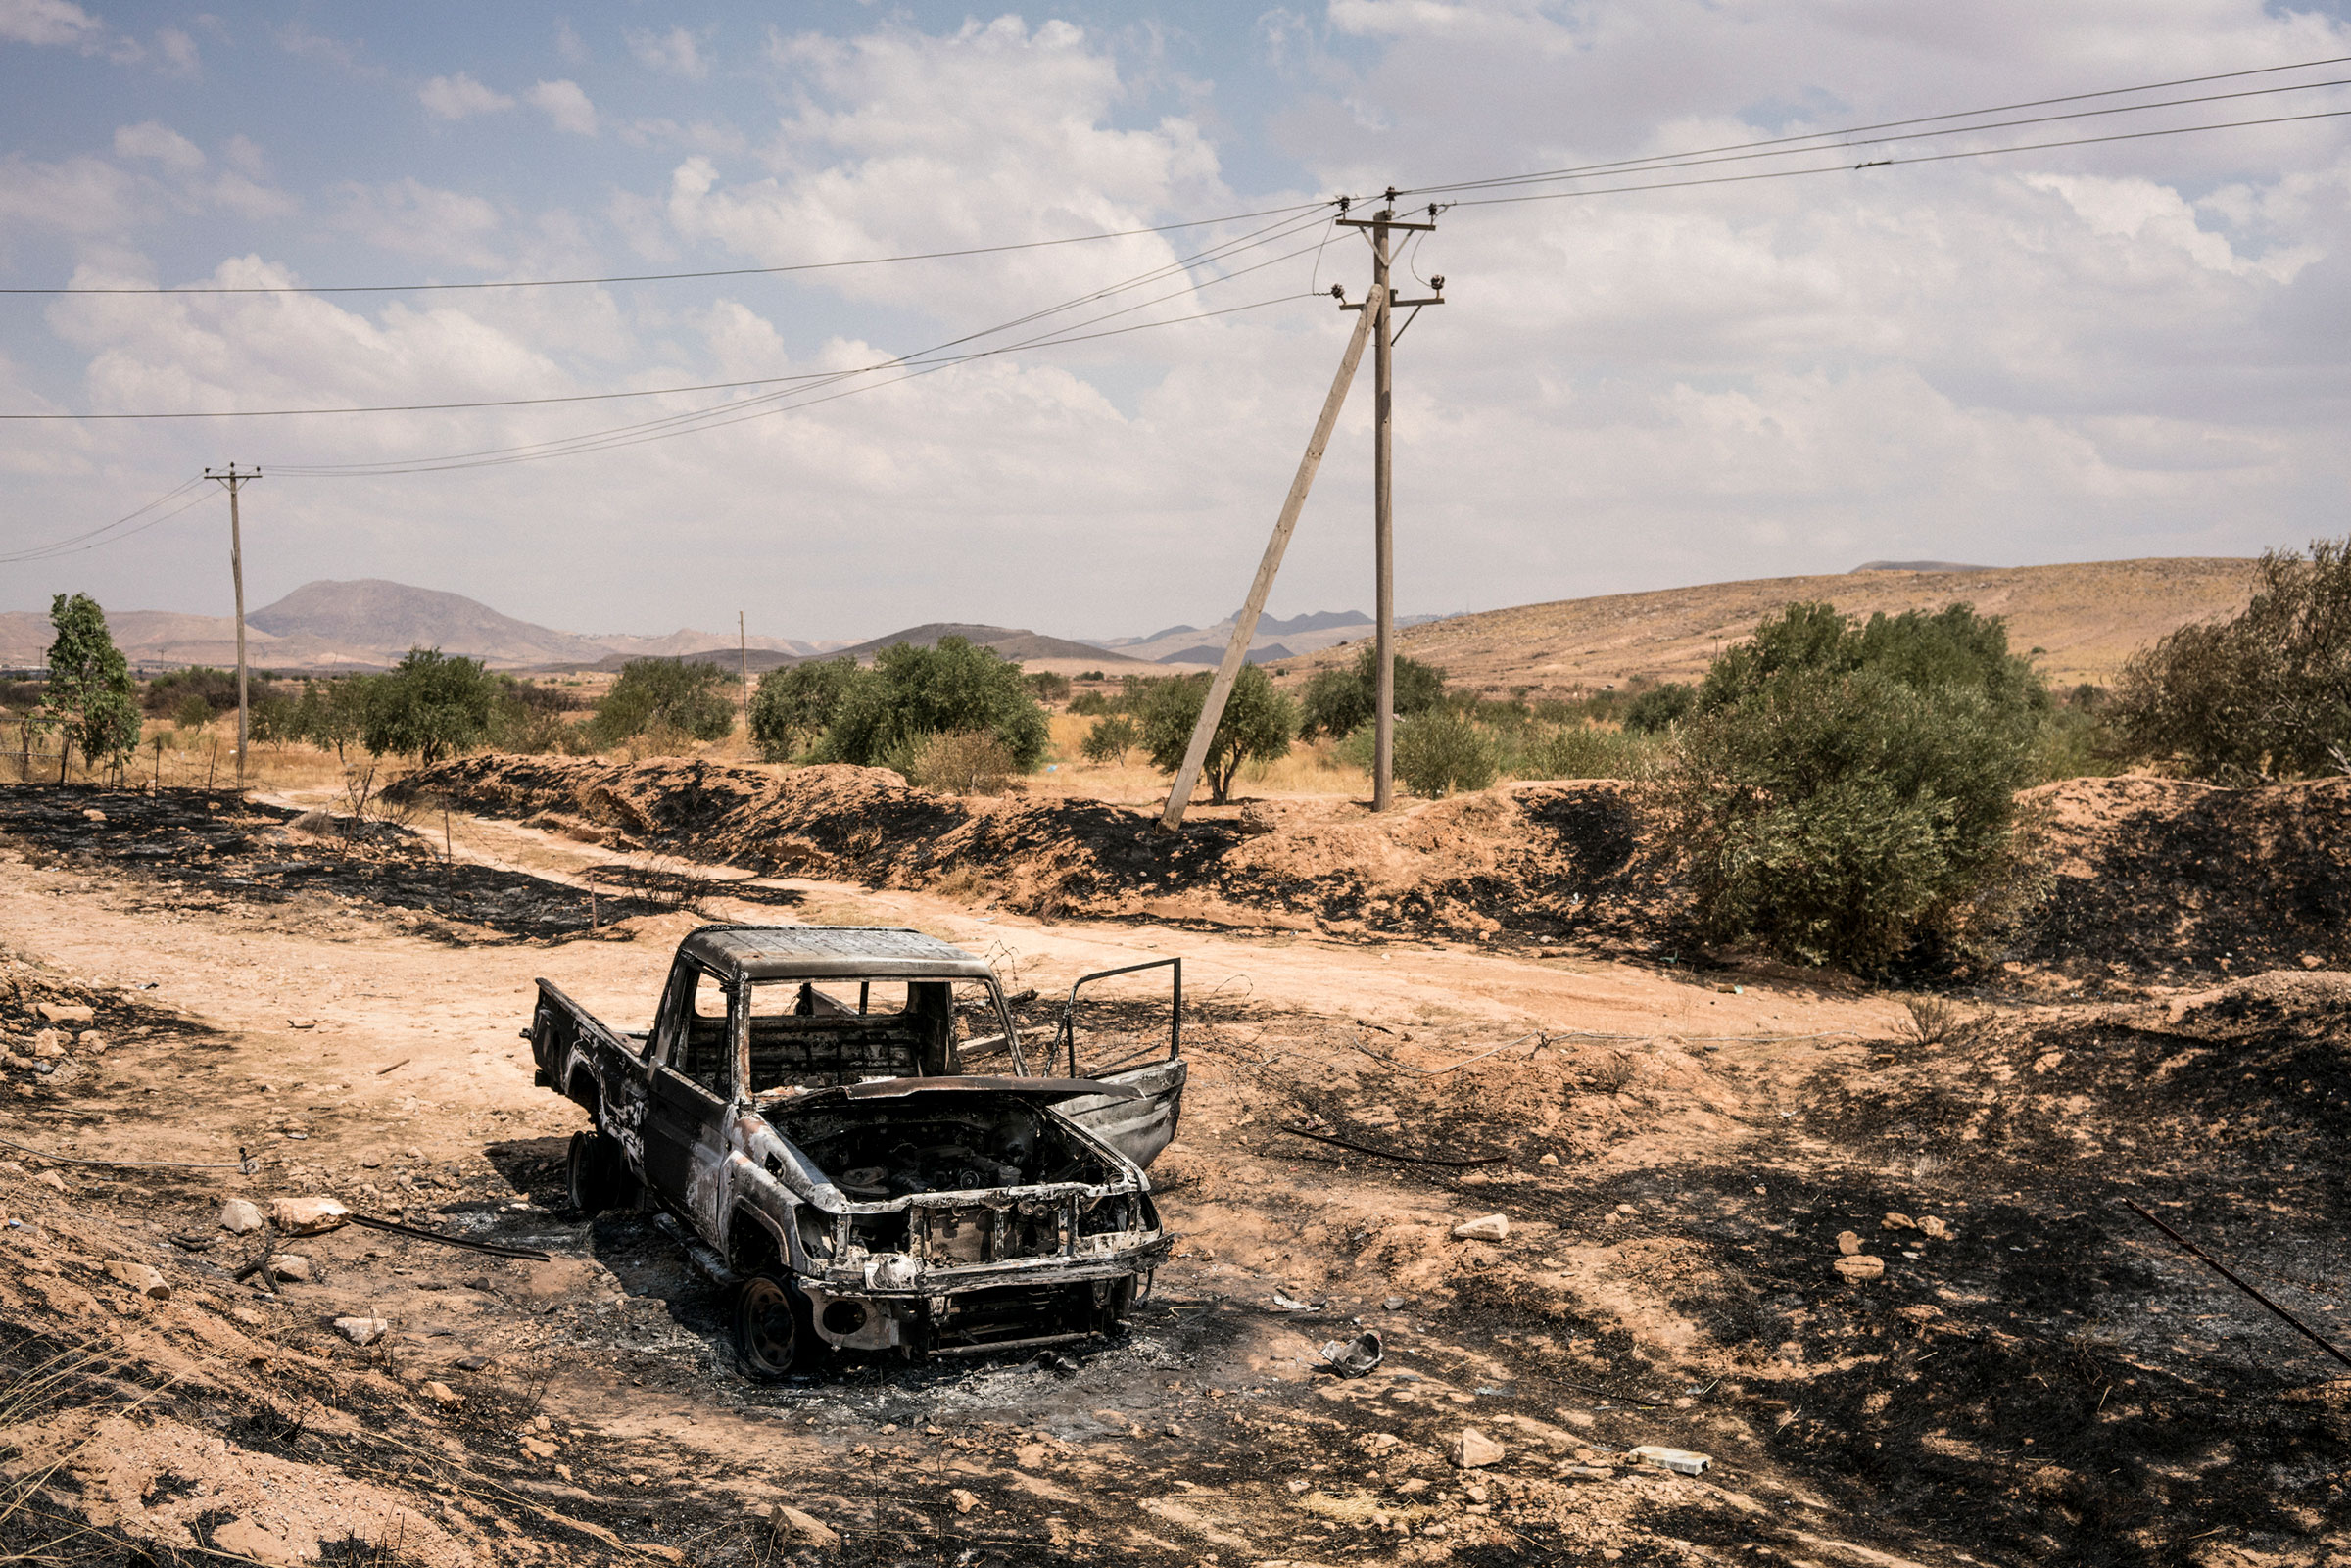 A vehicle burned during fighting in northwestern Gharyan on June 28, 2019.